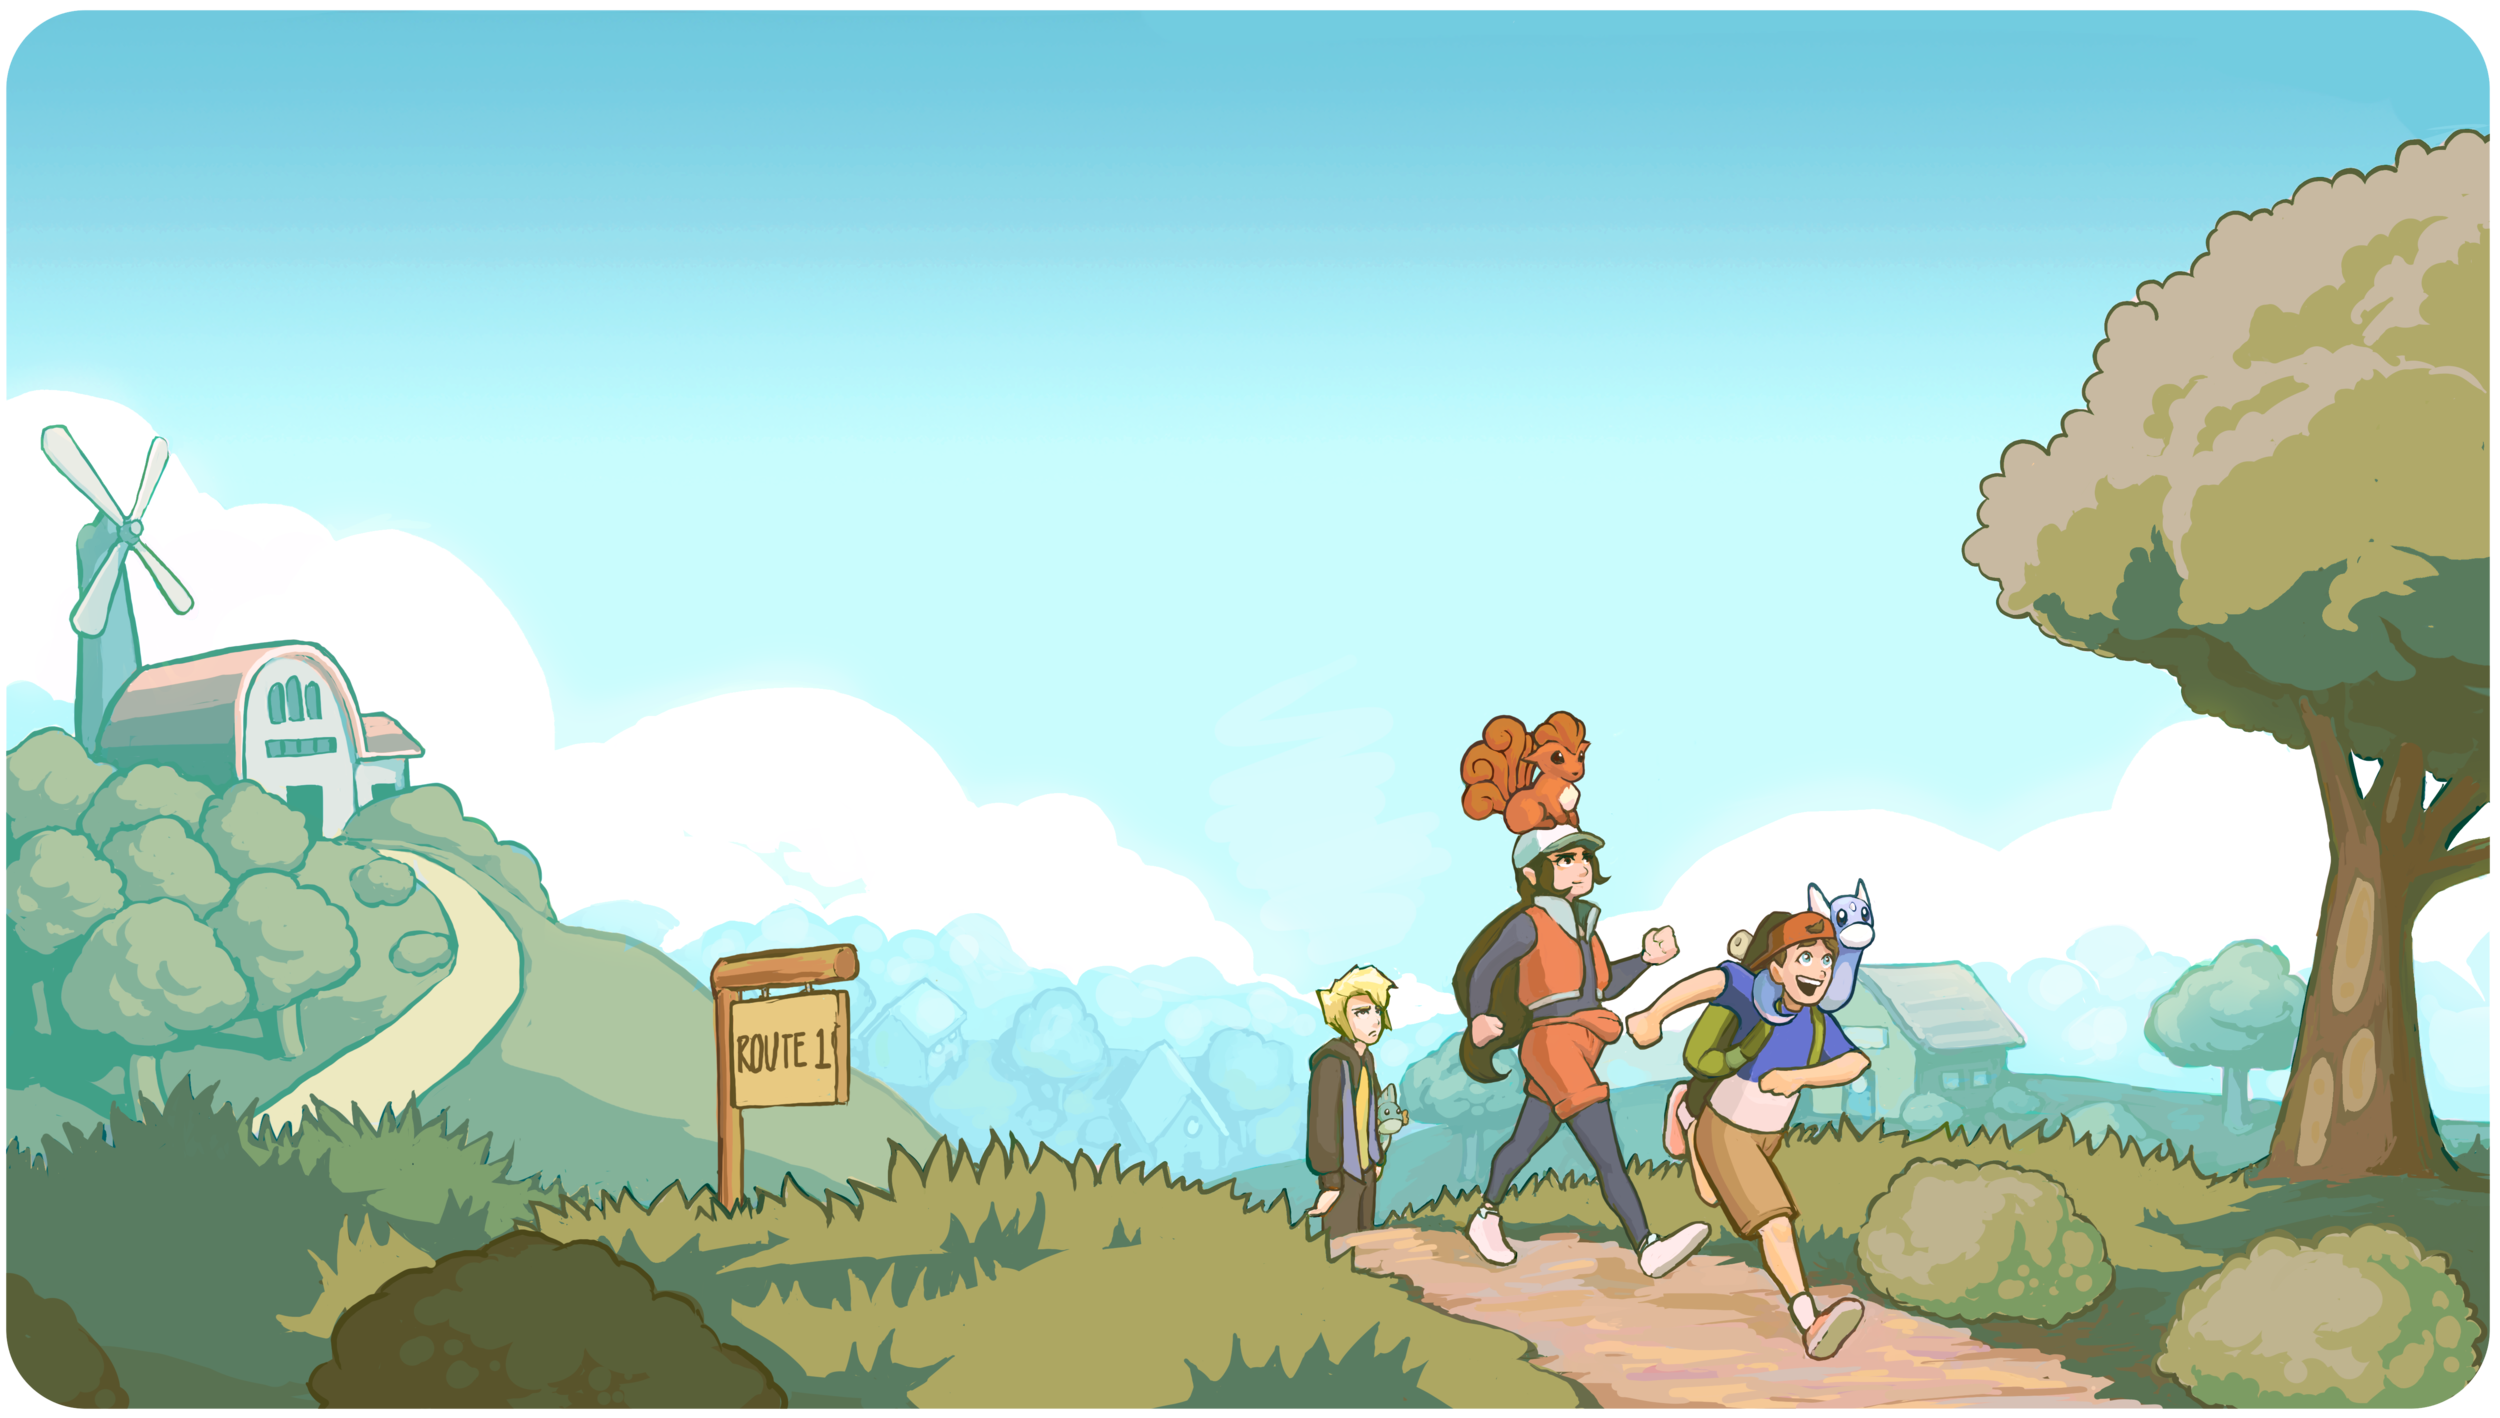 Skip, Candace, and Xander departing Pallet Town onto Route 1. Warm and bright, it is an exciting day.